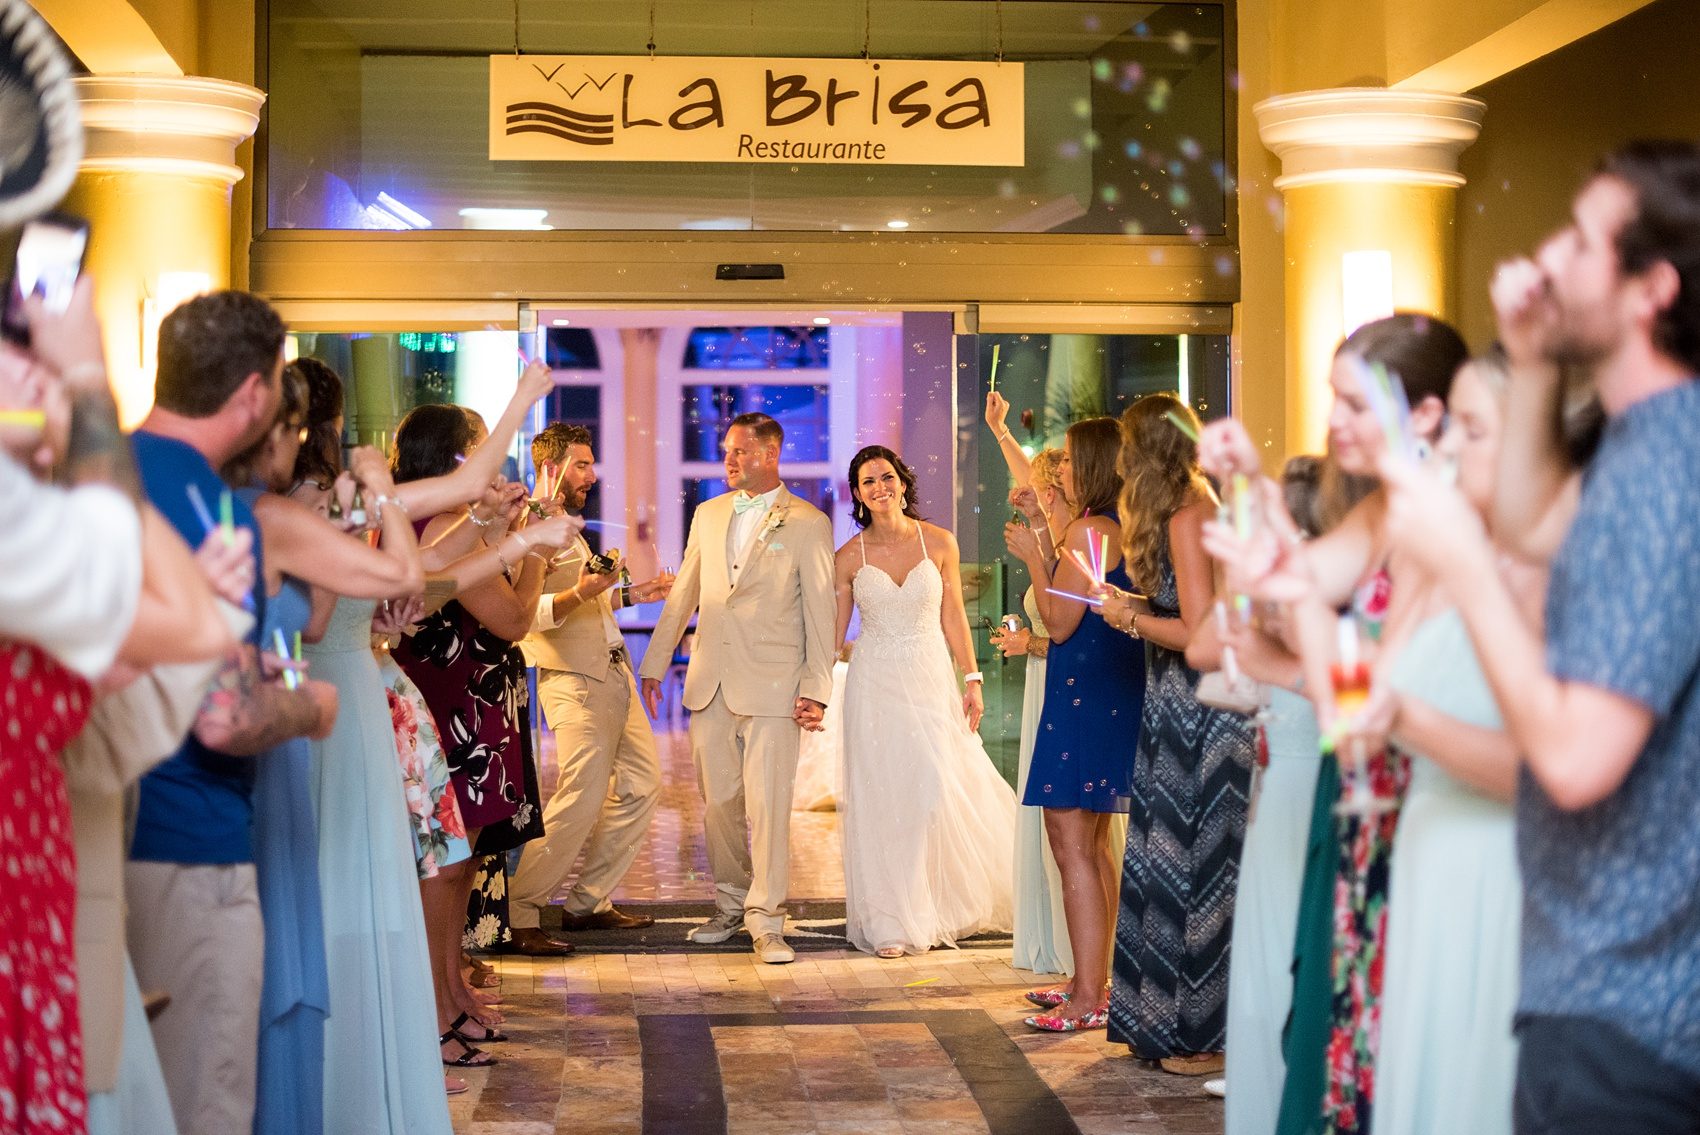 Mikkel Paige Photography photos from a wedding at Grand Paraiso, Mexico, Playa del Carmen Iberostar resort. Picture of bride and groom's bubble and glow stick exit.